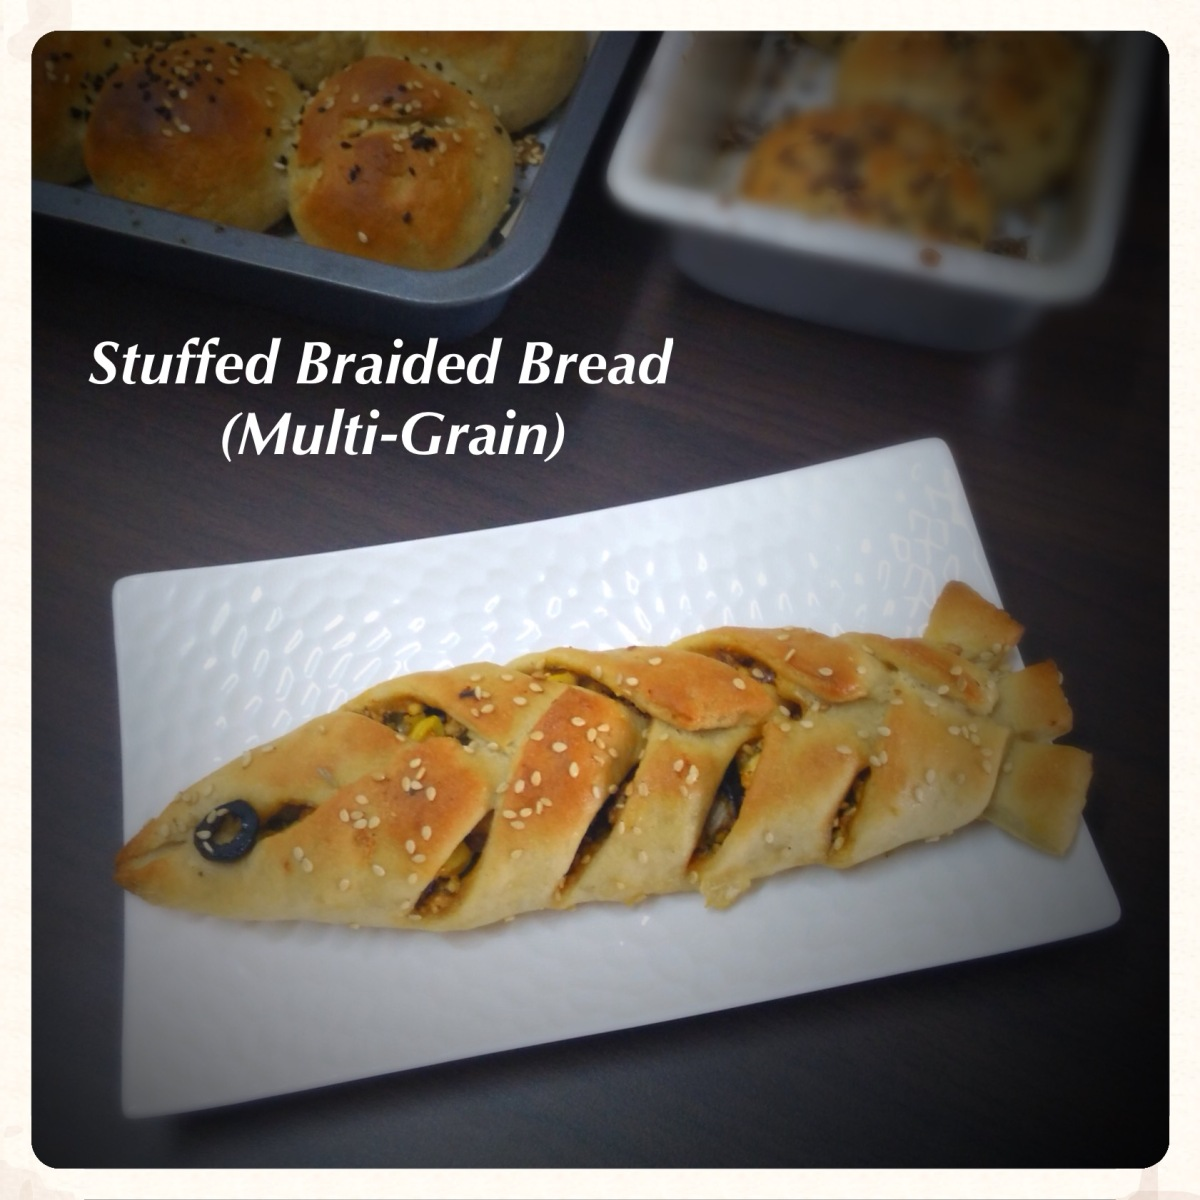 Stuffed Braided Bread (Multi-Grain) Recipe